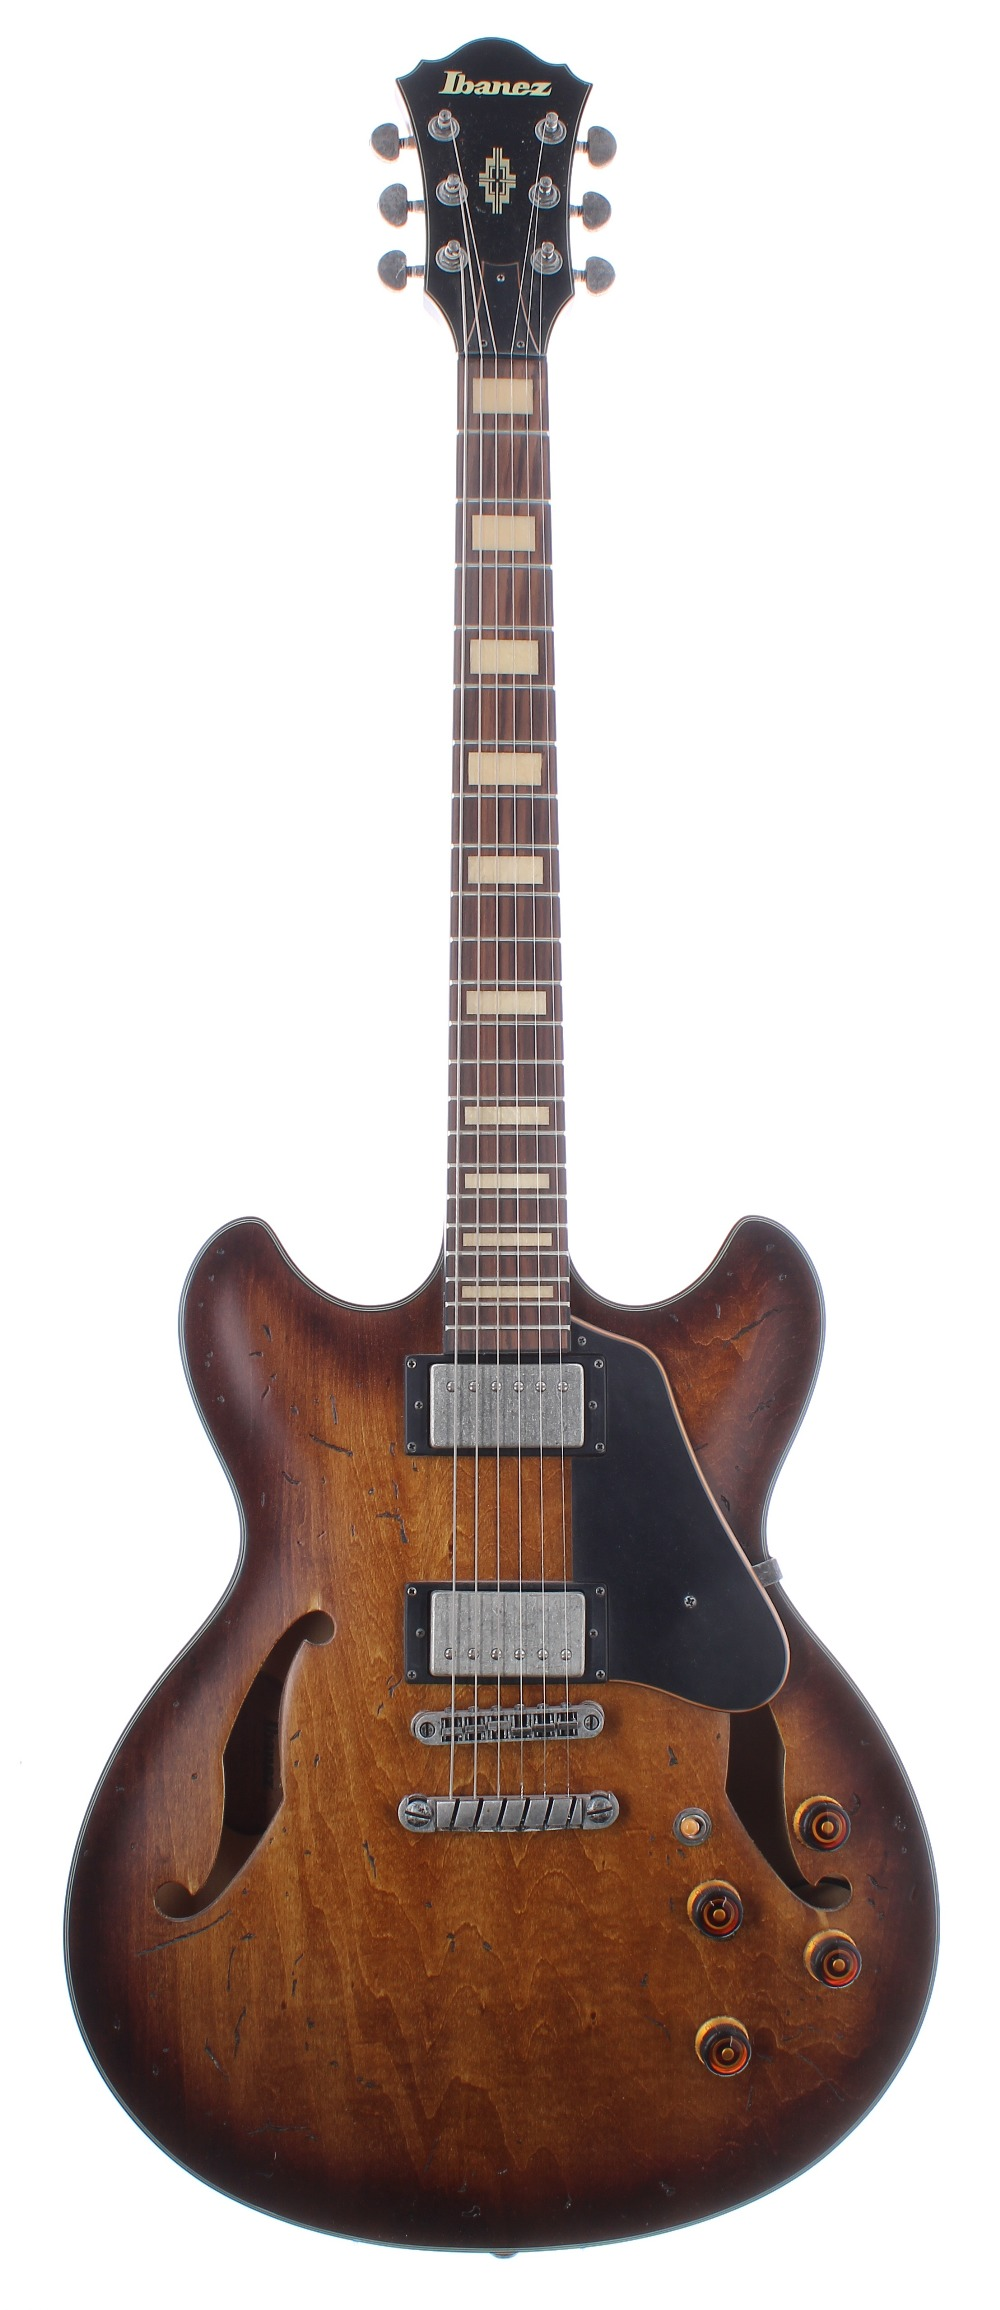 2016 Ibanez Artcore ASV10A-TCL-12-01 semi-hollow body electric guitar, made in China, ser. no.